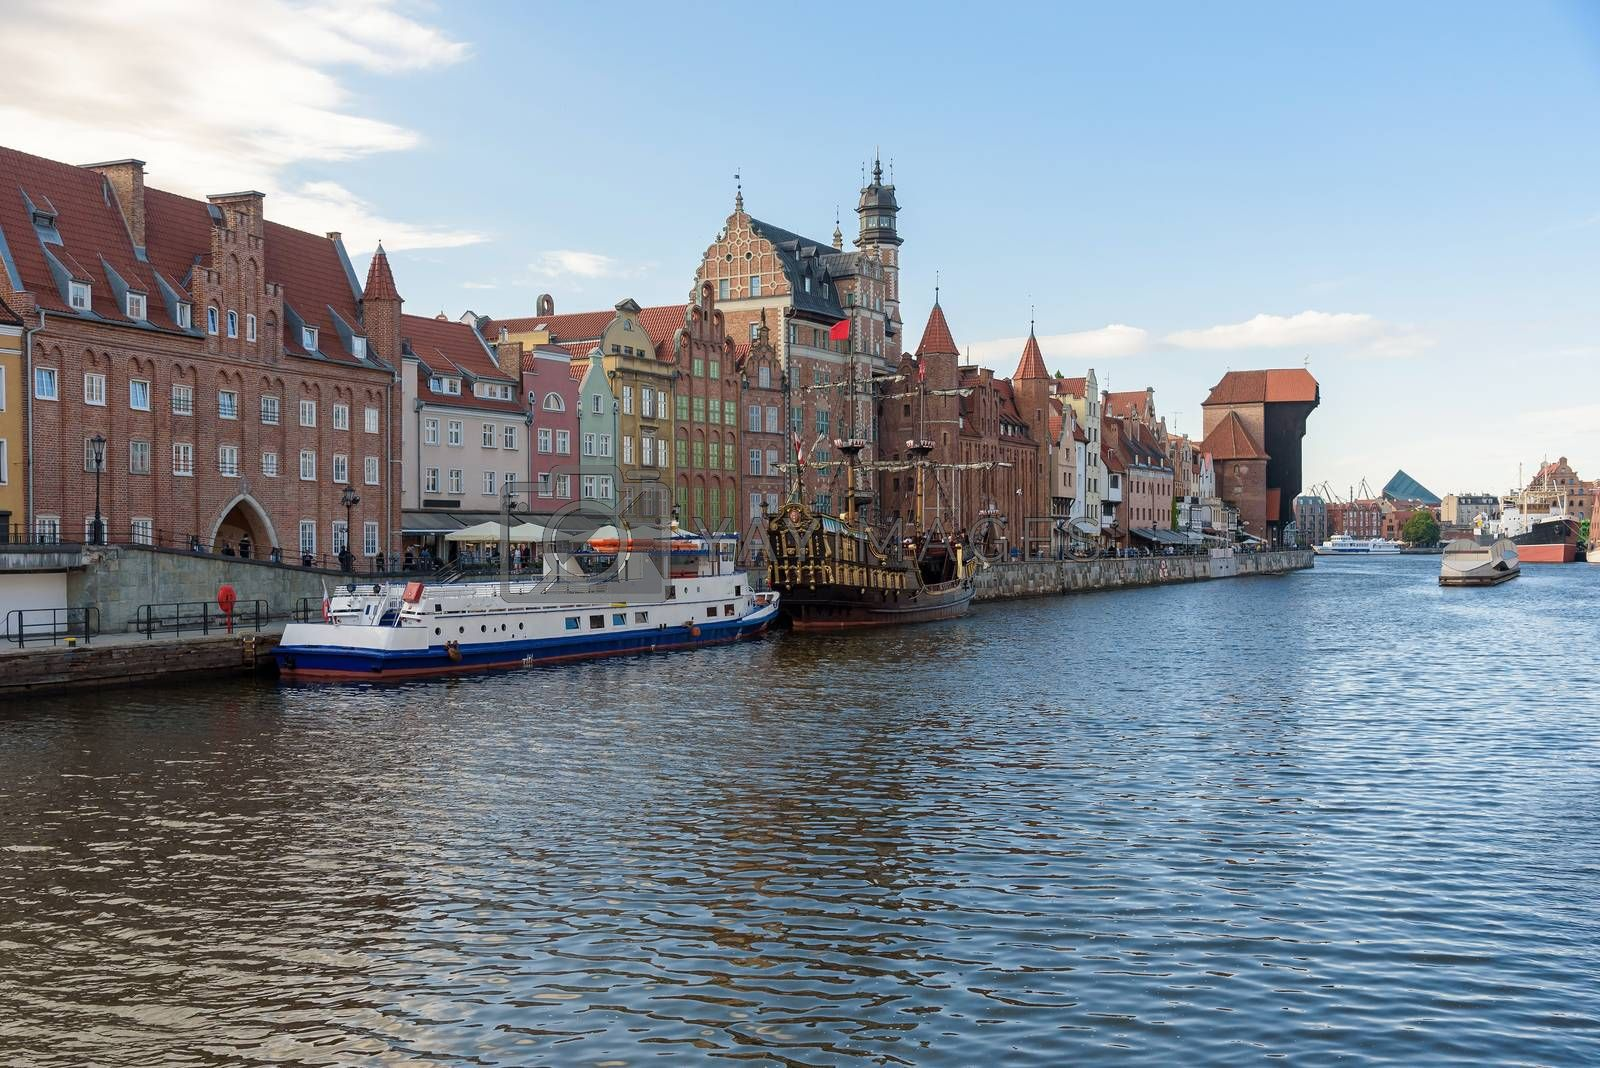 Passenger ships moored in pier at Motlawa river in Gdansk old town, Poland